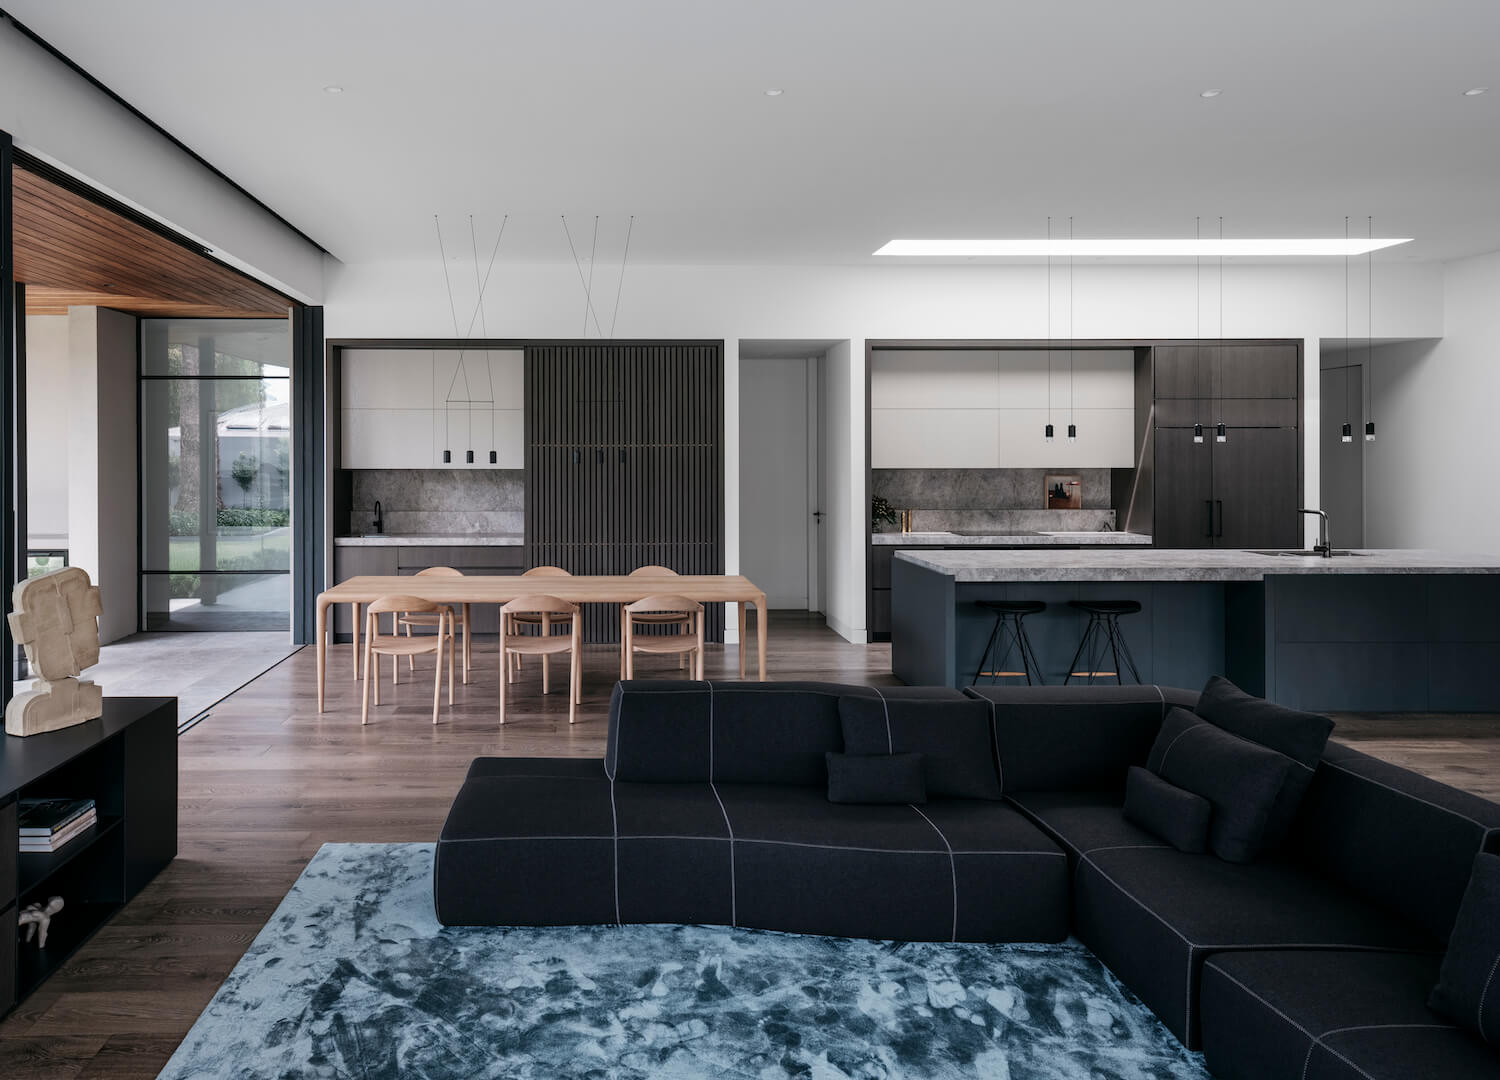 est living brighton homestead robsonrak AIDA shortlist 2019 2